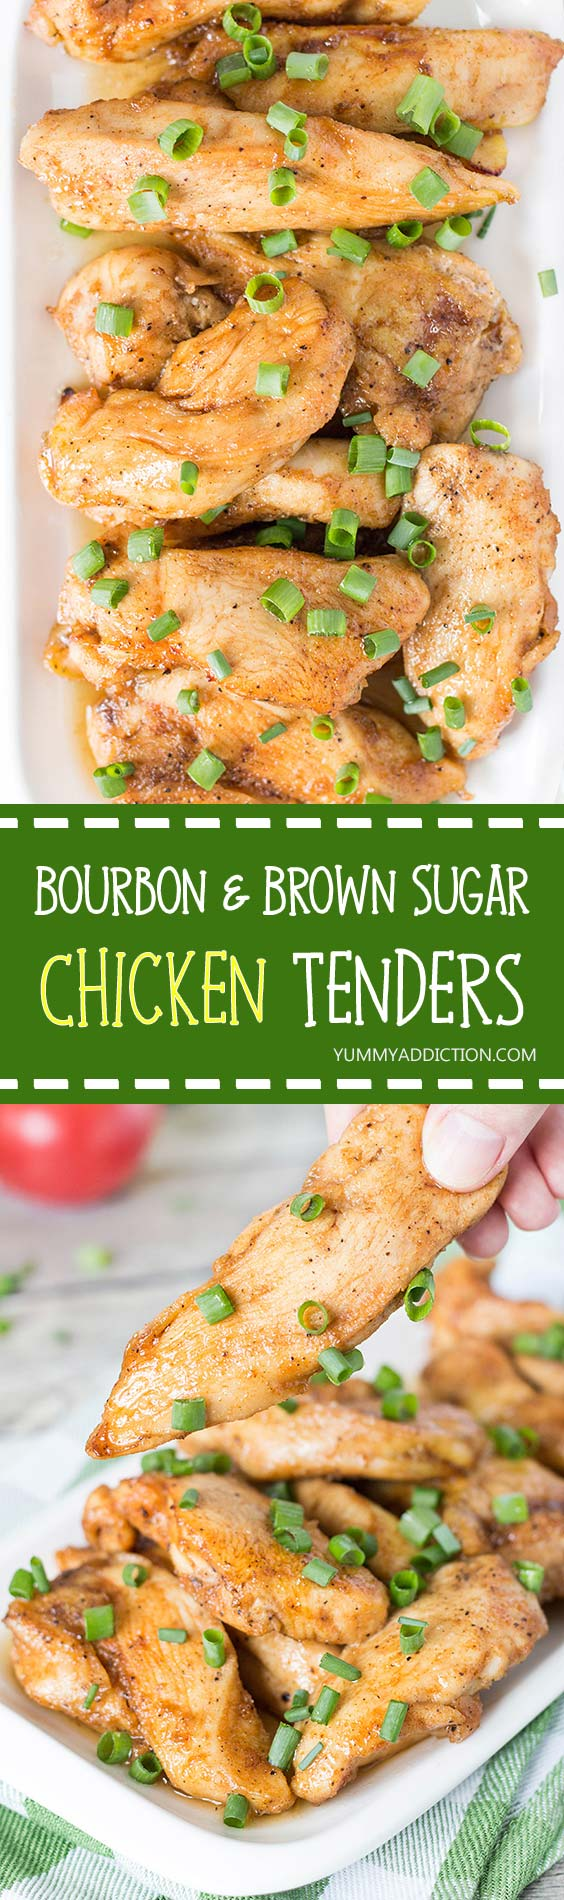 These Bourbon Brown Sugar Chicken Tenders are really tender and so juicy! The flavor is sweet and spicy. Try them! | yummyaddiction.com